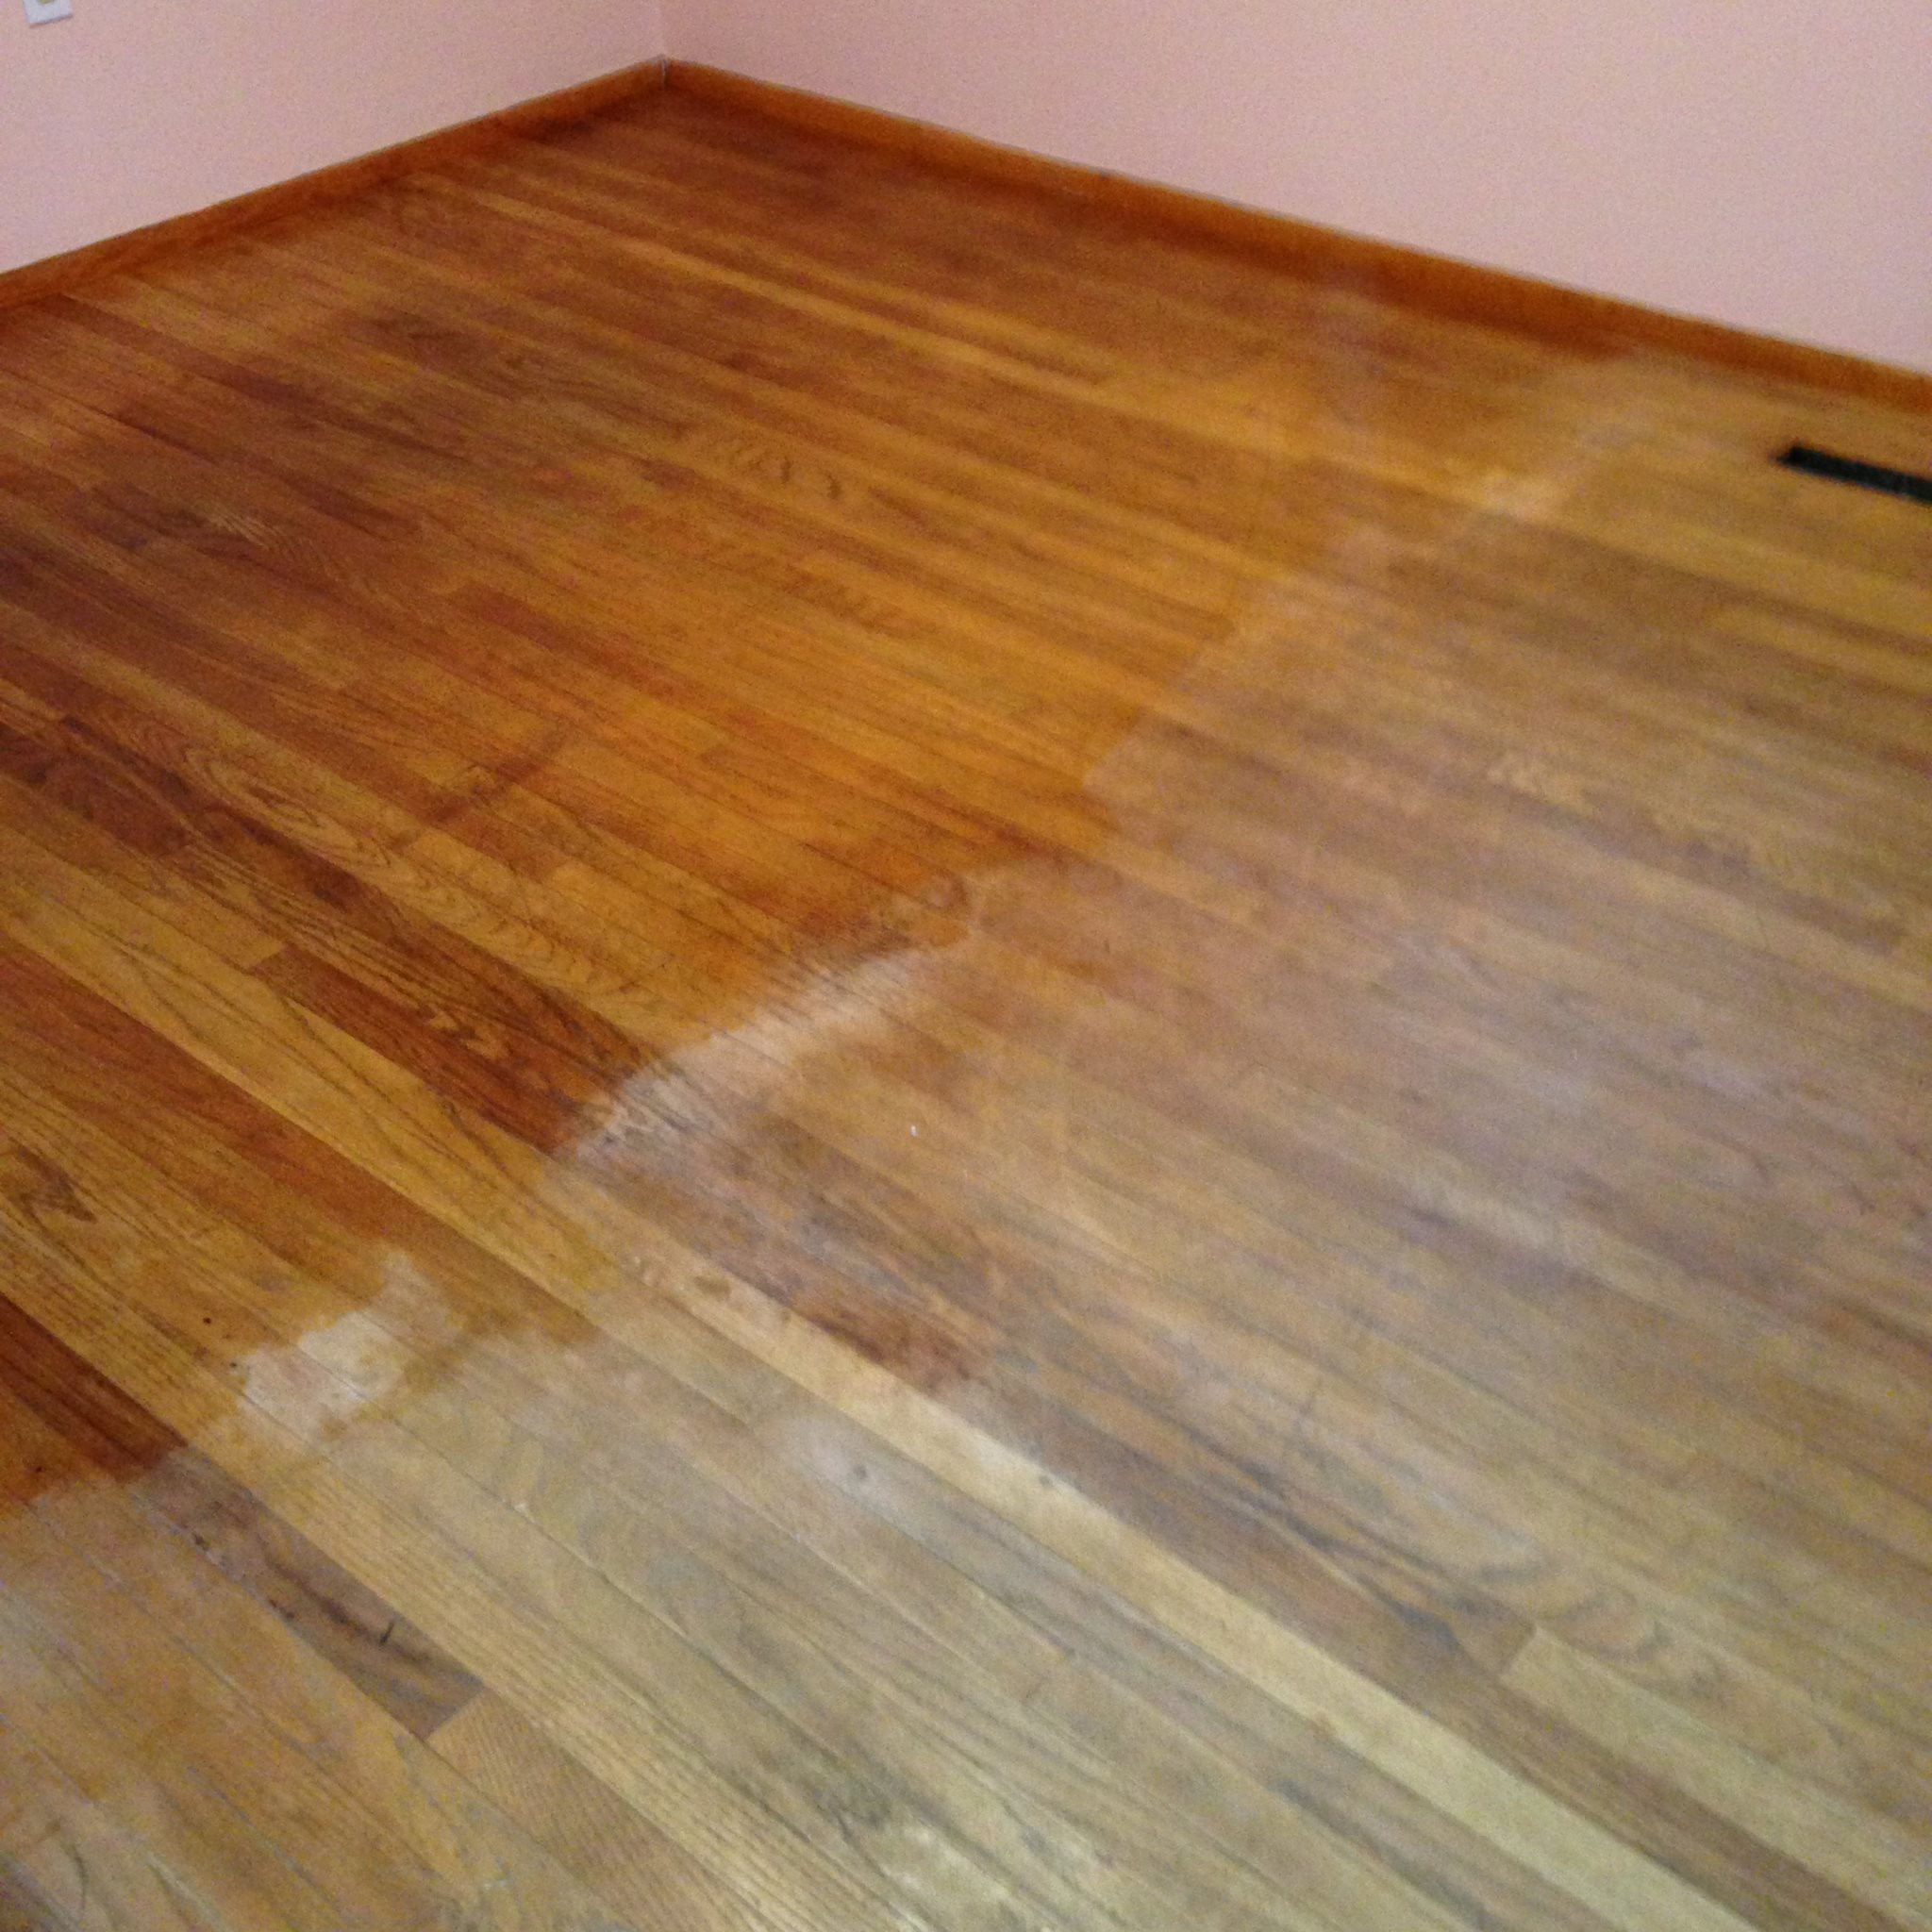 Repairing Gaps In Old Hardwood Floors Of 15 Wood Floor Hacks Every Homeowner Needs to Know Pertaining to Wood Floor Hacks 15